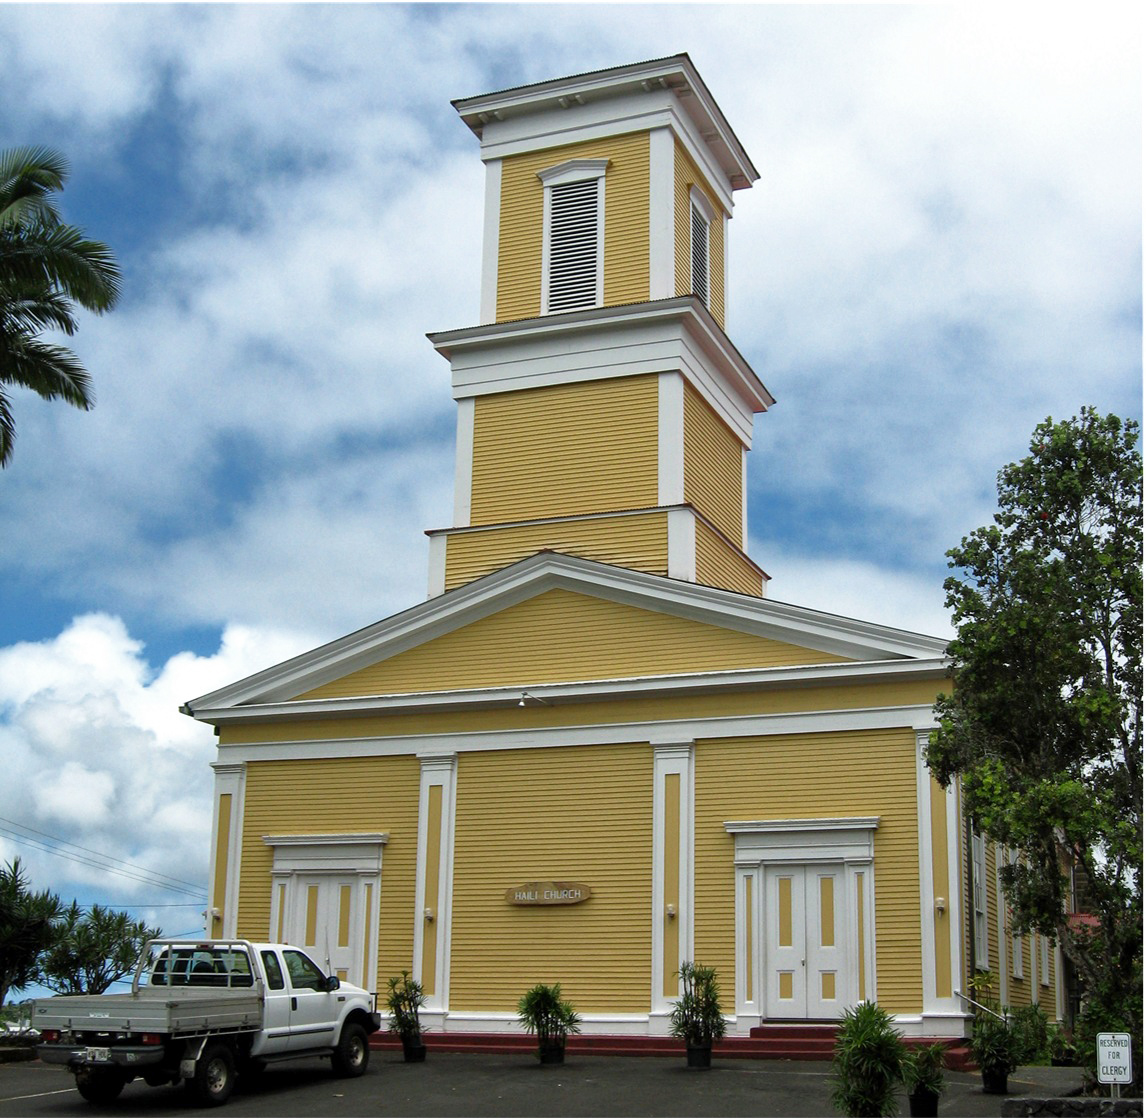 Haili Church Hilo Hawaii